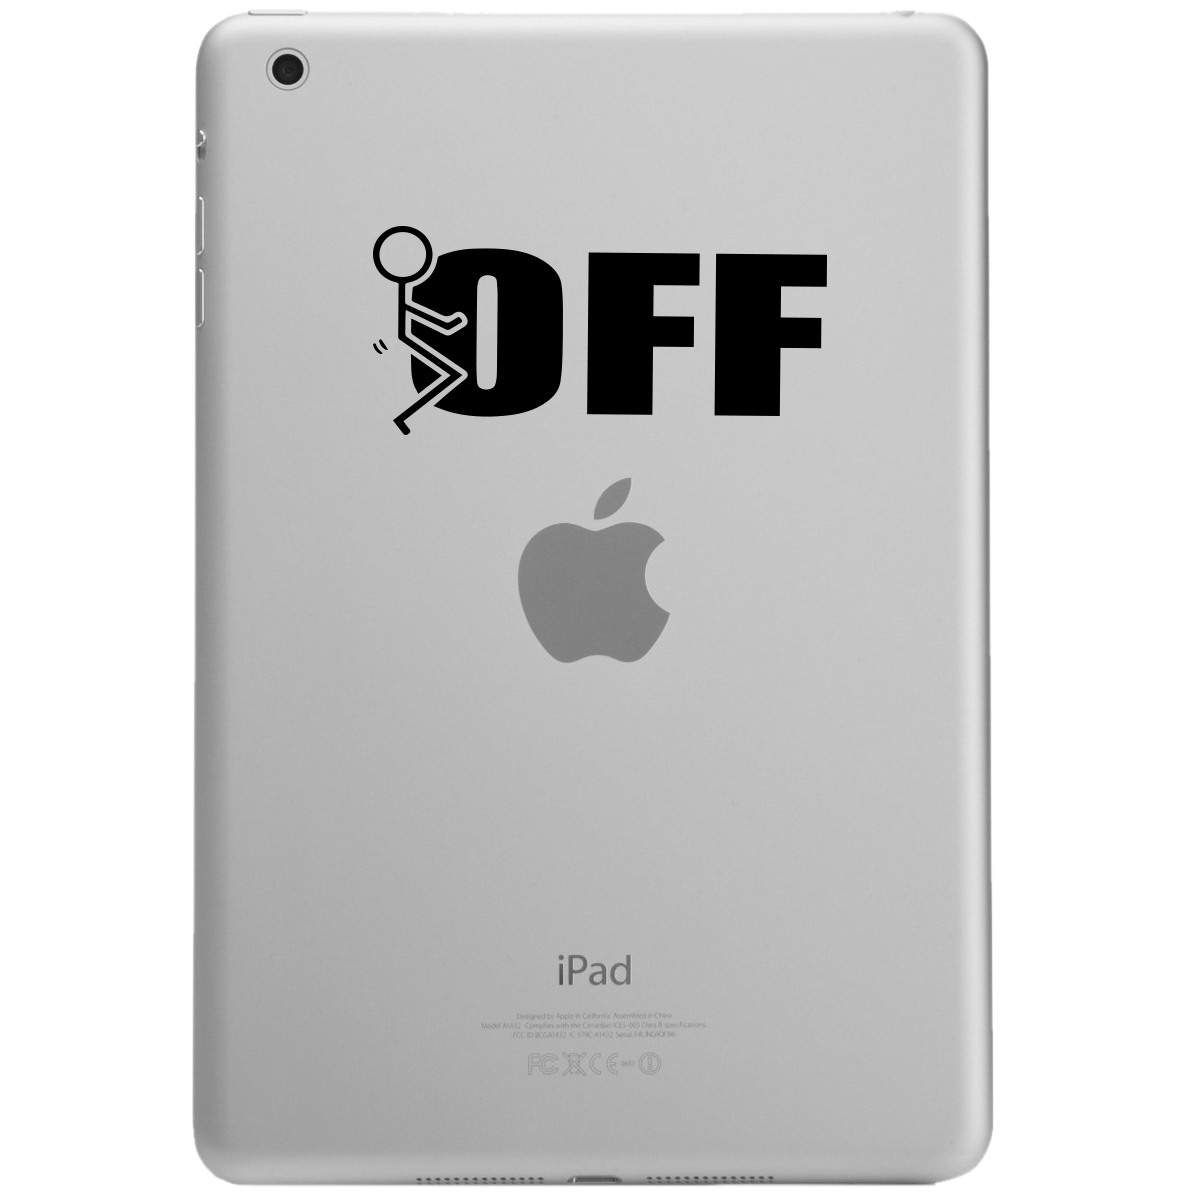 Funny Humping Stick Figure F*ck Off iPad Tablet Vinyl Sticker Decal